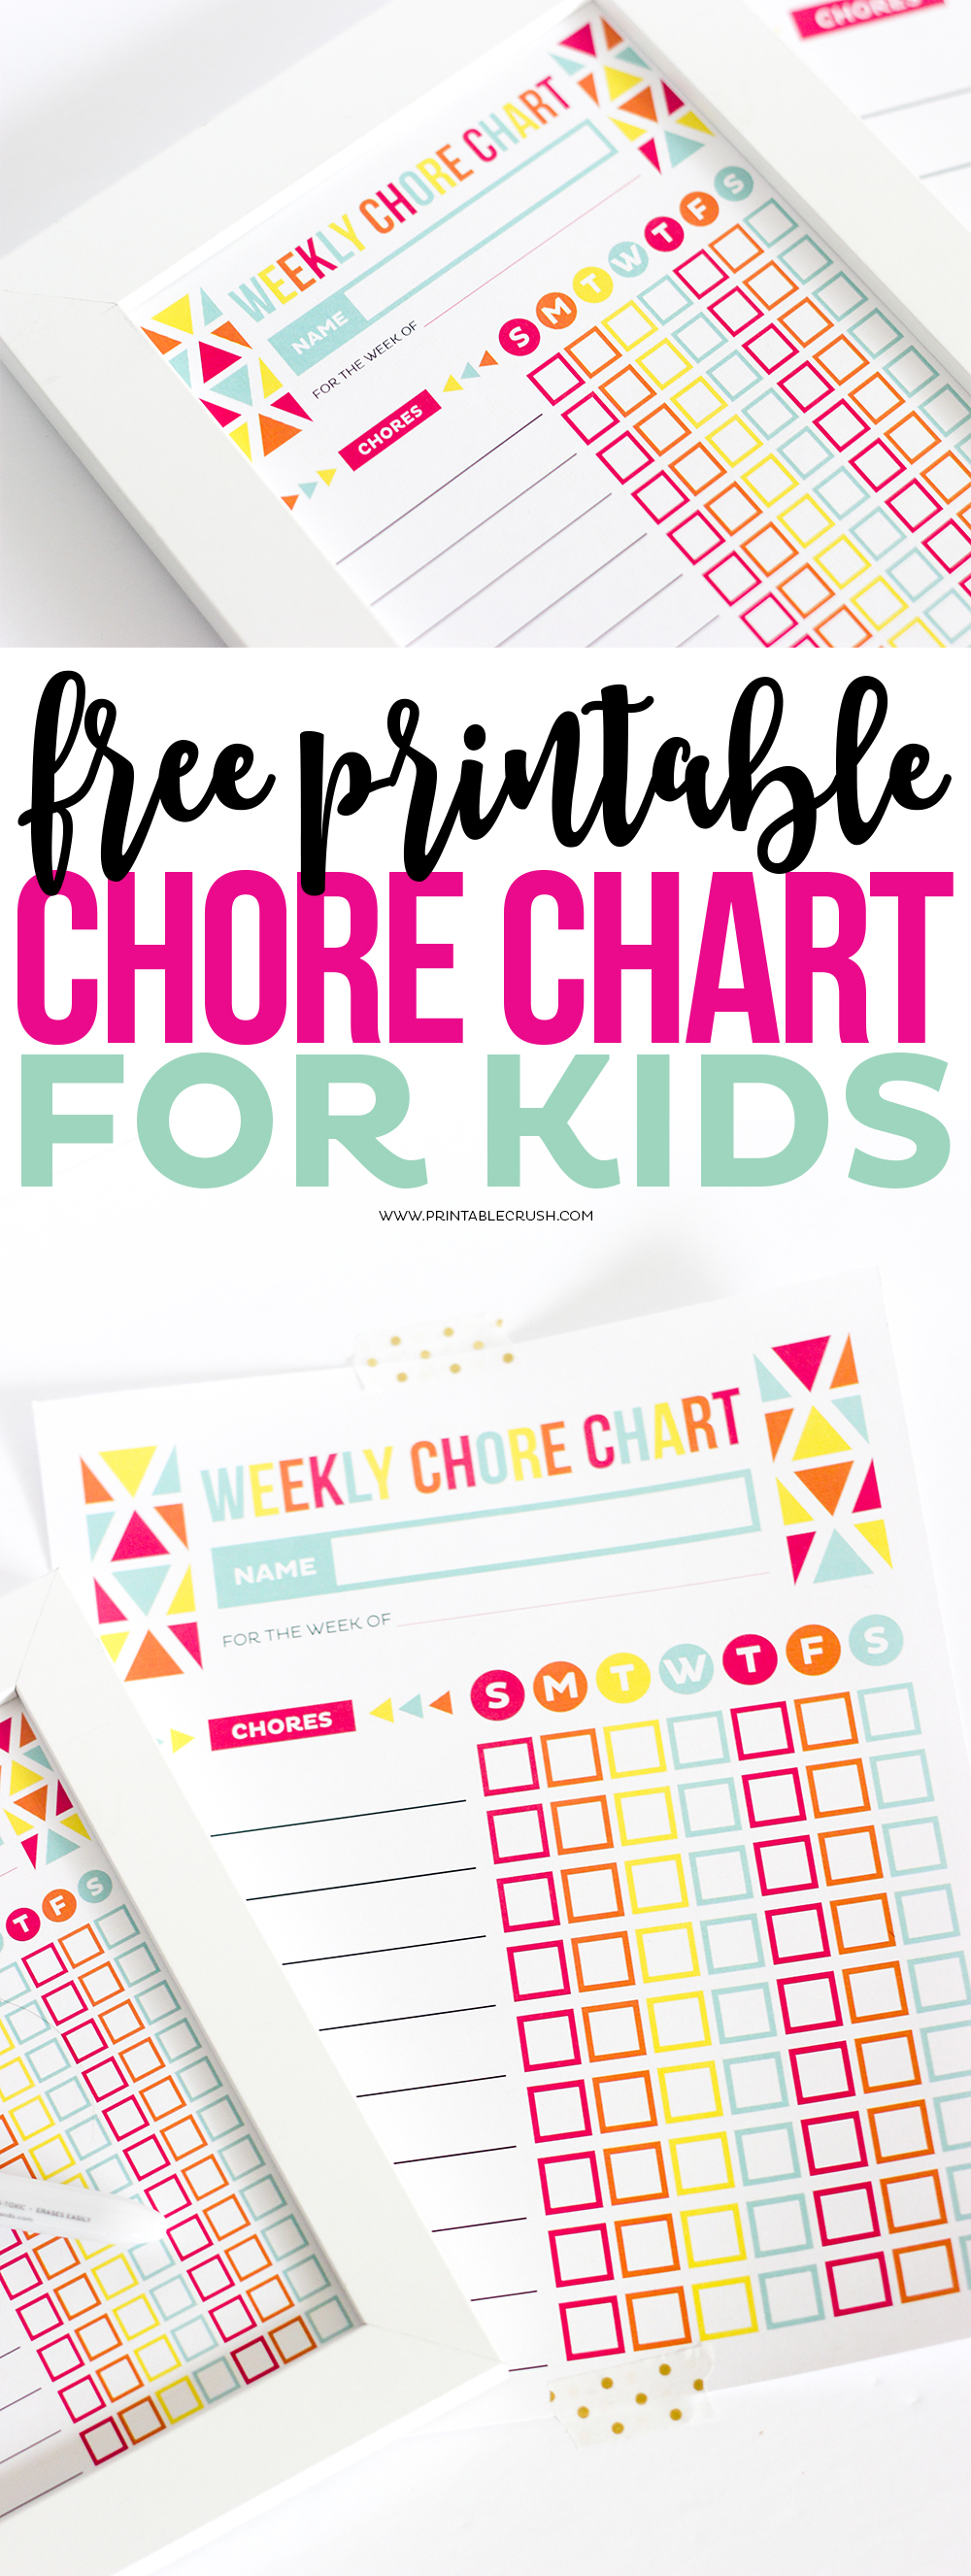 graphic relating to Printable Chore Chart for Kids named Chore Charts For Youngsters - Retain Little ones Upon Monitor Utilizing My No cost